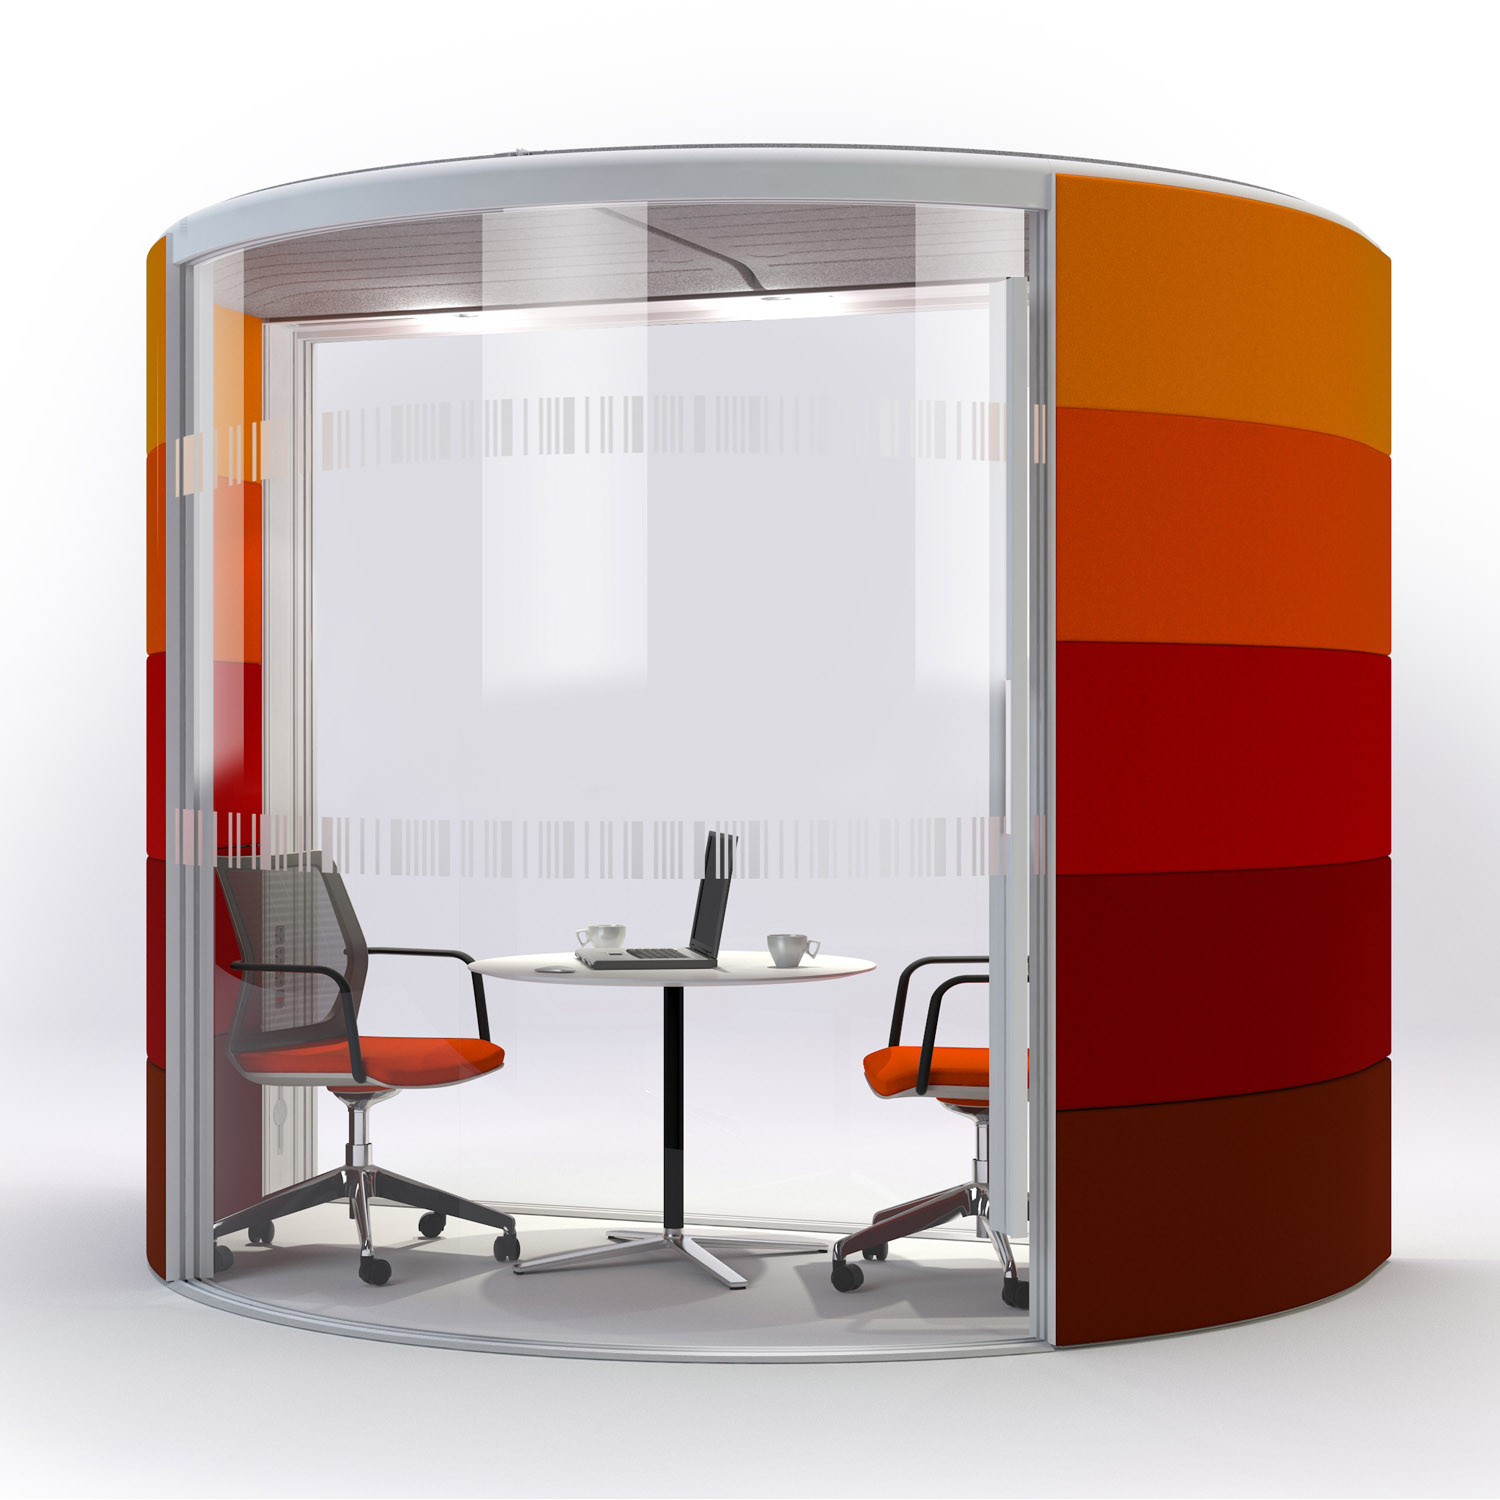 air acoustic pods orangebox meeting pods apres furniture